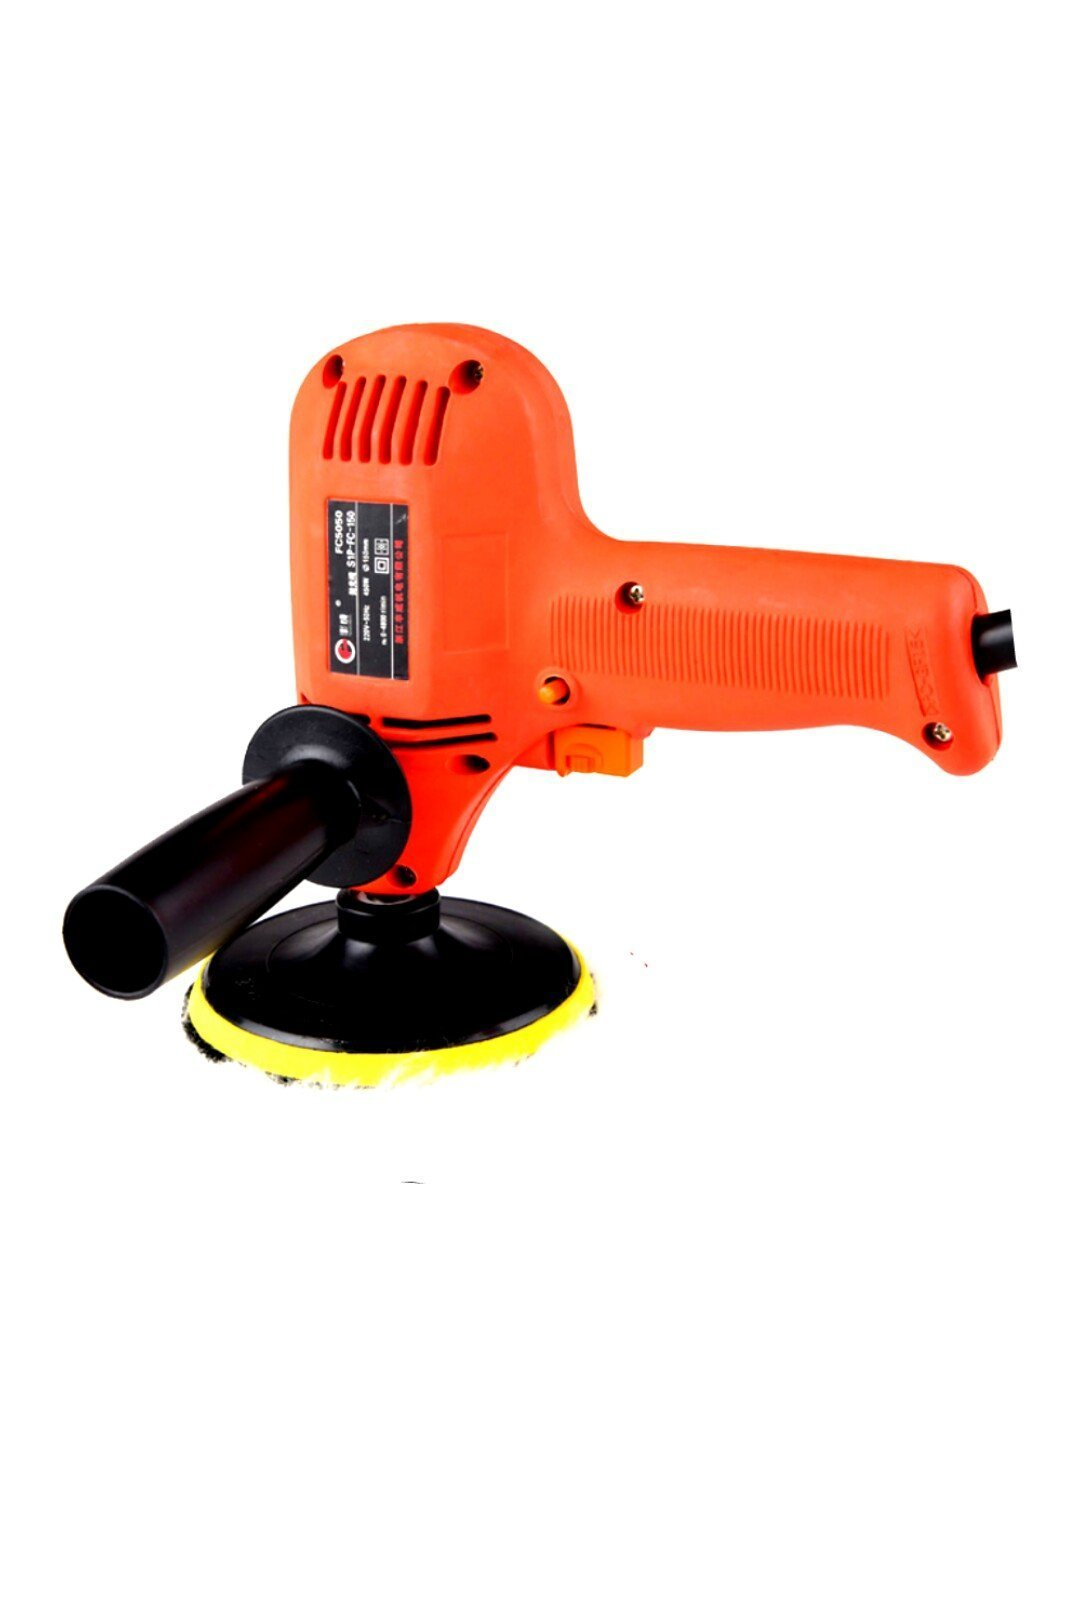 HEAVY DUTY VERTICAL CAR/ BIKE POLISHER FOR HOME & PROFESSIONAL USE.